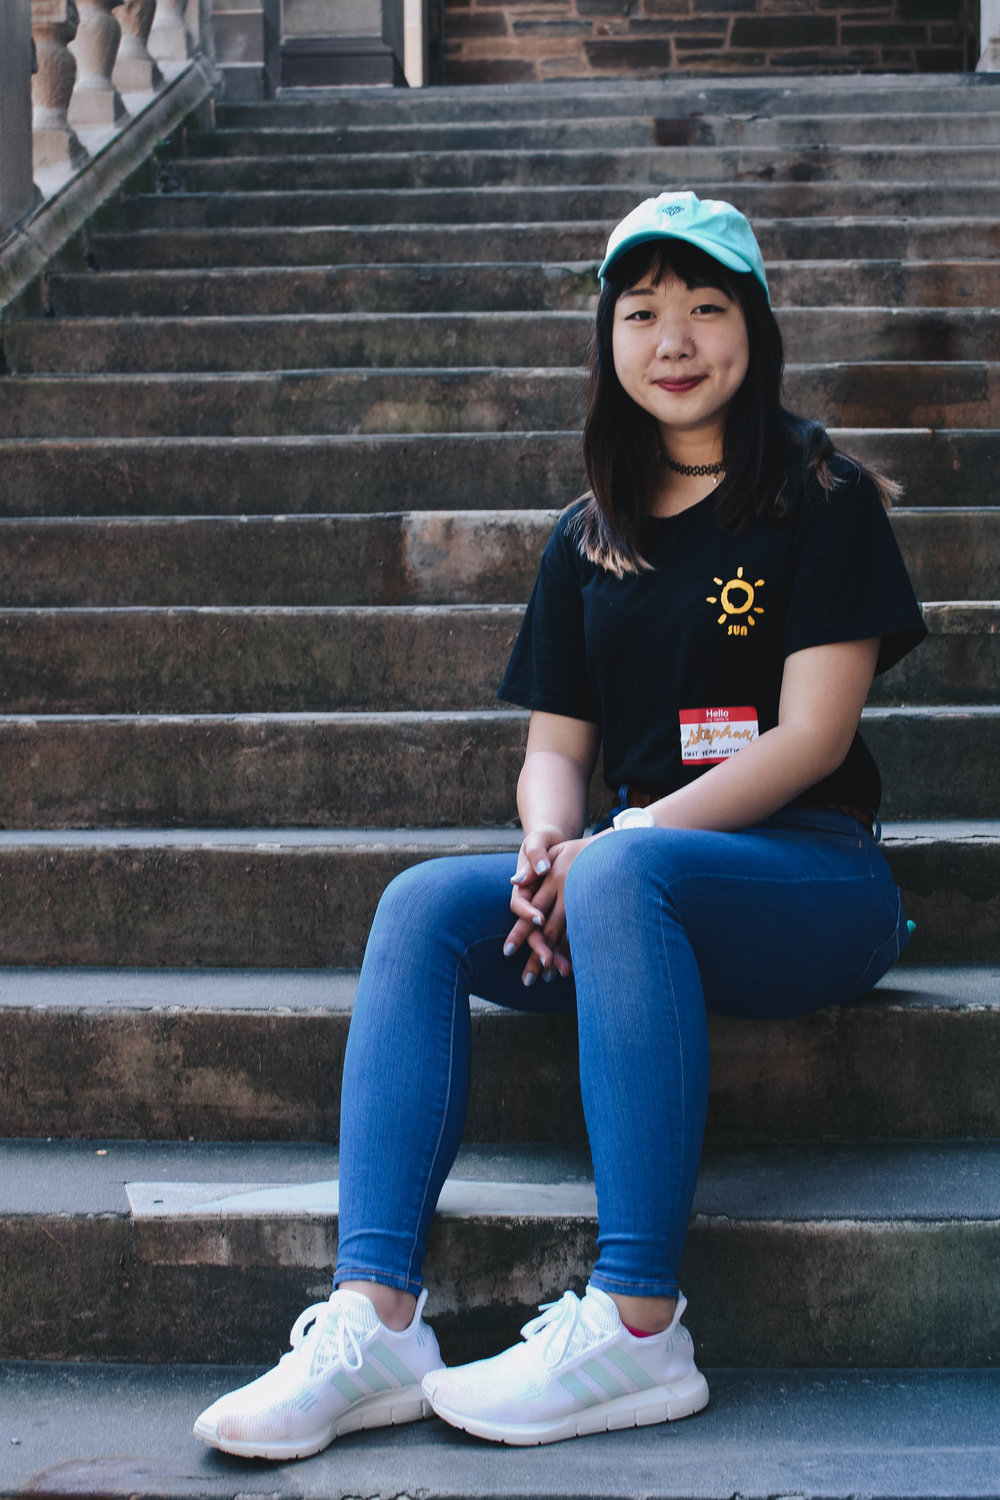 Stephanie Lin Co-Director of Mentorship Initiatives Year: Junior, 2019 Major: Atmospheric Sciences Other Involvements: Cornell Taiwanese American Society, alpha Kappa Delta Phi, Bowling Club, MGLC Judicial Board, American Meteorological Society As Co-Director of Mentorship Initiatives, Stephanie strives to facilitate more meaningful relationships between underclassmen and upperclassmen, as well as helping first-years become experienced Cornellians. In her free time, you can find her at the bowling alley or stuck in the 11th floor of Bradfield geeking out about lake-effect snow.